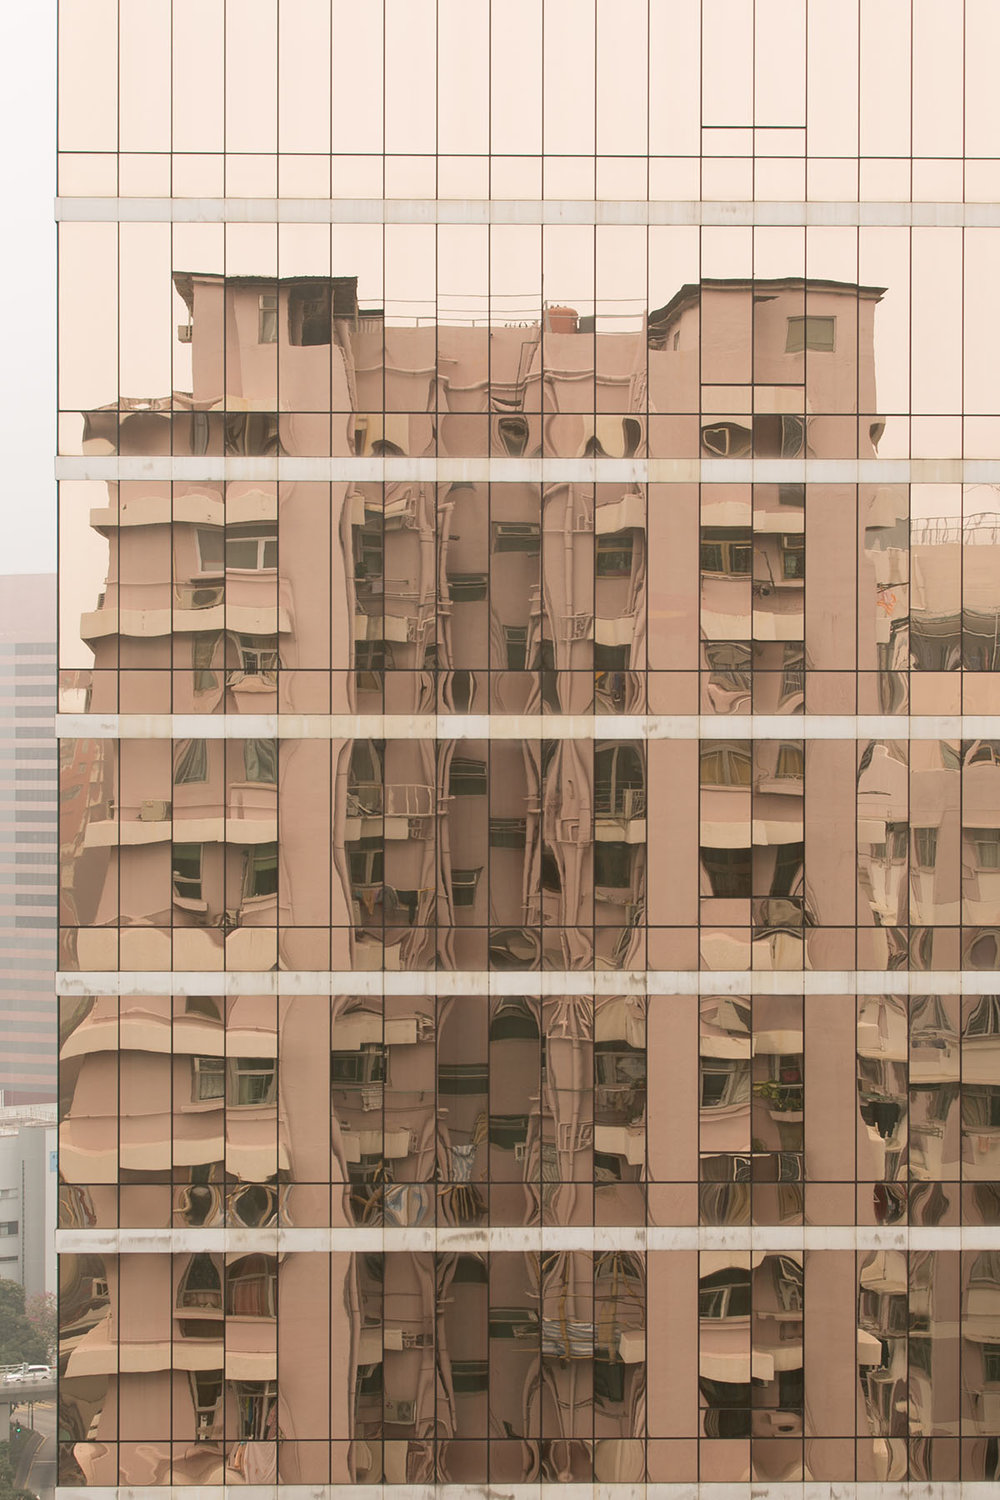 Reflected Building Residential Living Hong Kong.jpg